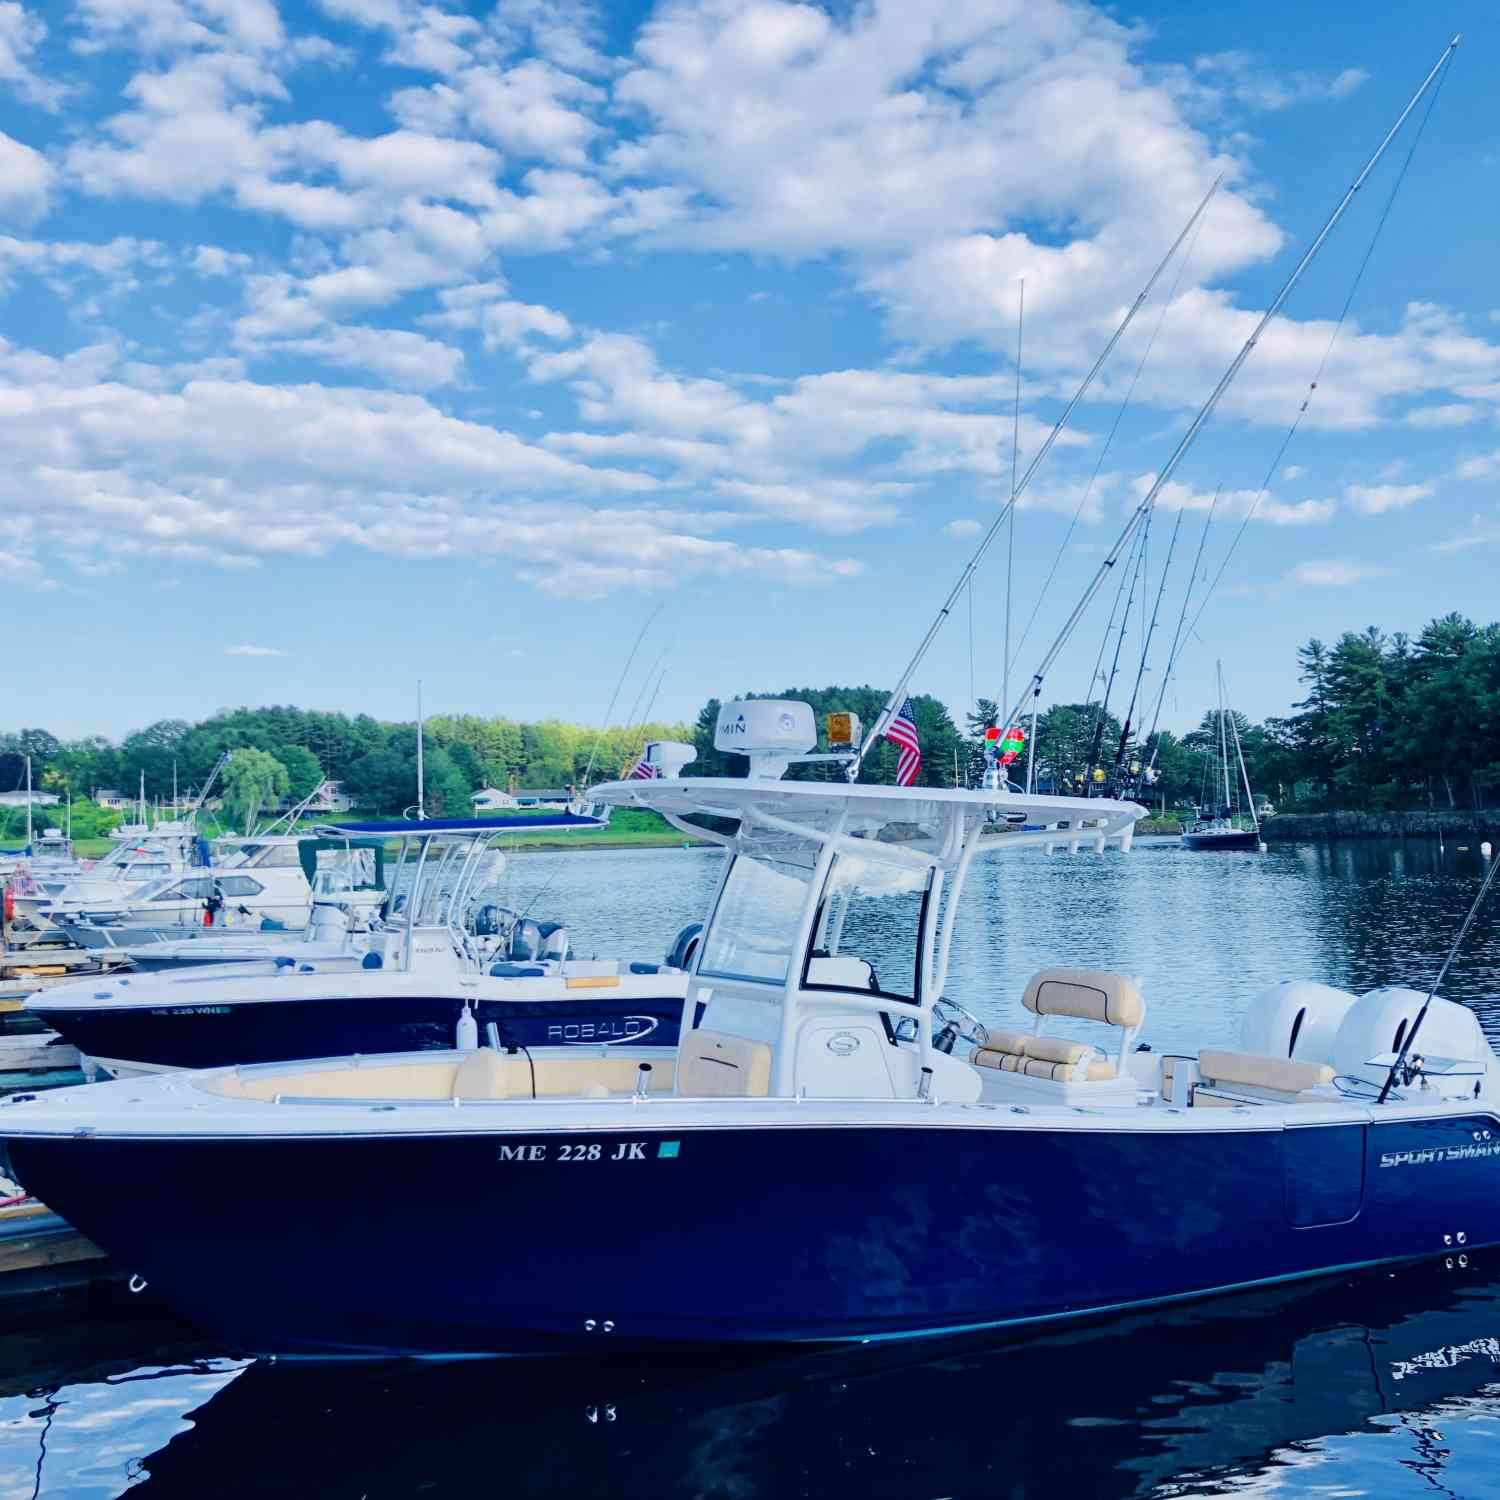 Title: Chilling at the dock - On board their Sportsman Open 252 Center Console - Location: Saco MAINE. Participating in the Photo Contest #SportsmanJuly2019